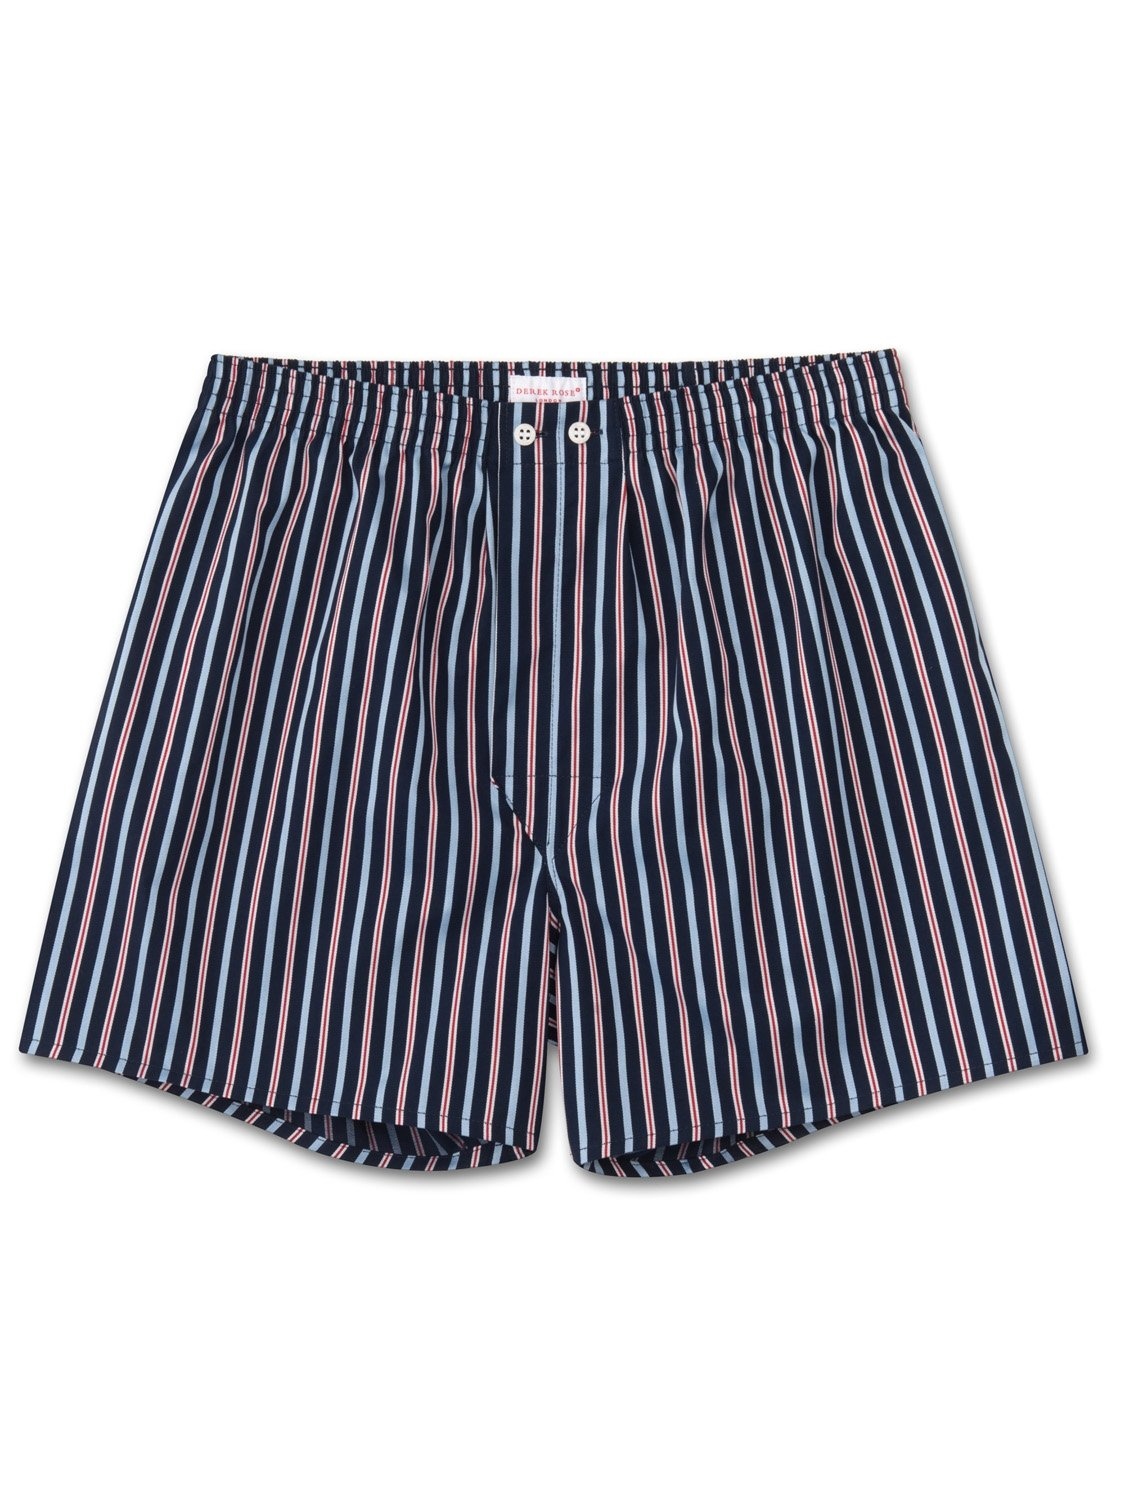 Men's Classic Fit Boxer Shorts Royal 206 Cotton Satin Stripe Navy